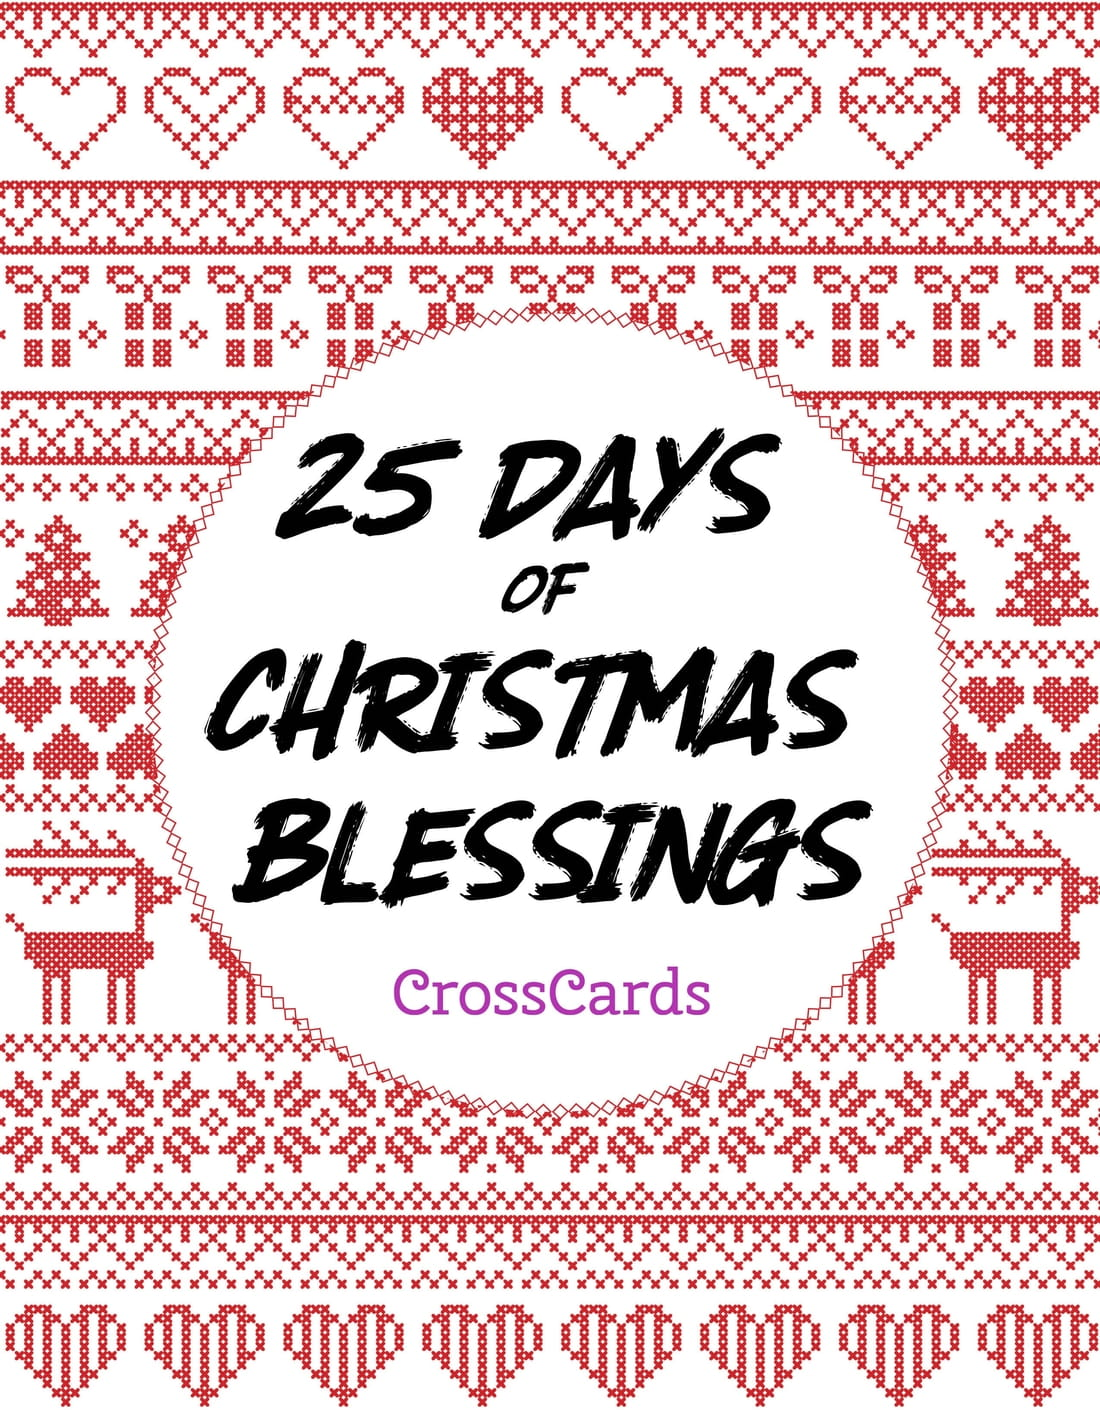 25 Days of Christmas Blessings